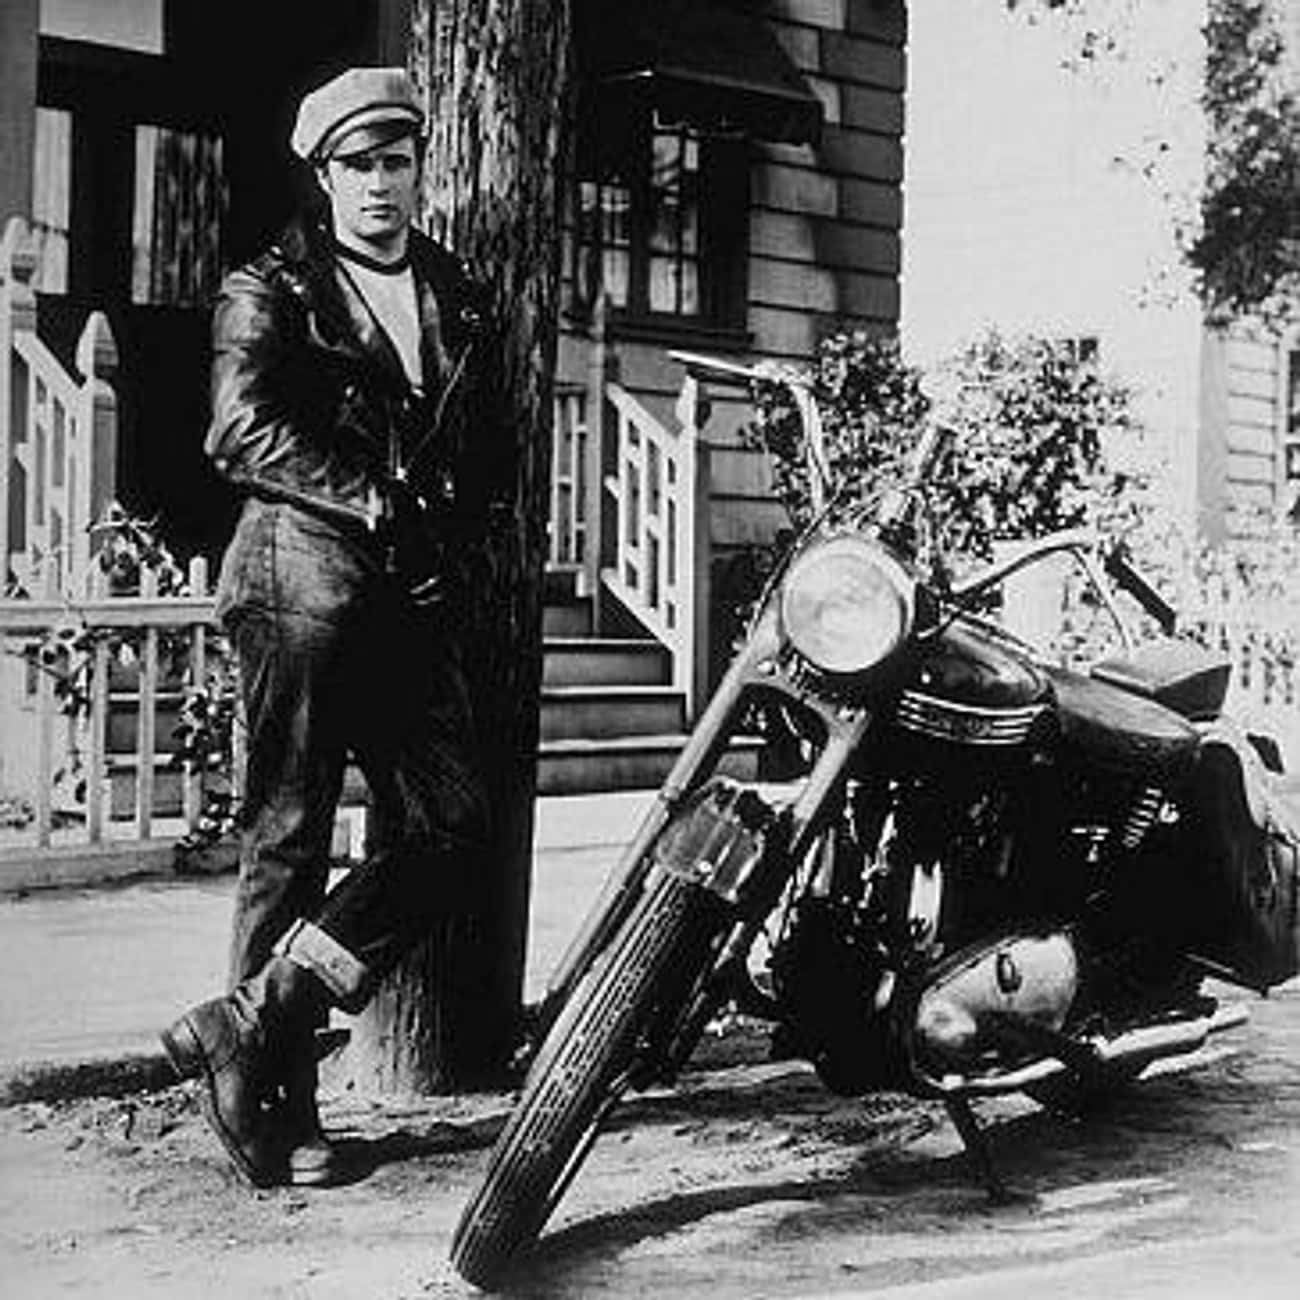 Marlon Brando is listed (or ranked) 4 on the list Actors Who Ride Motorcycles